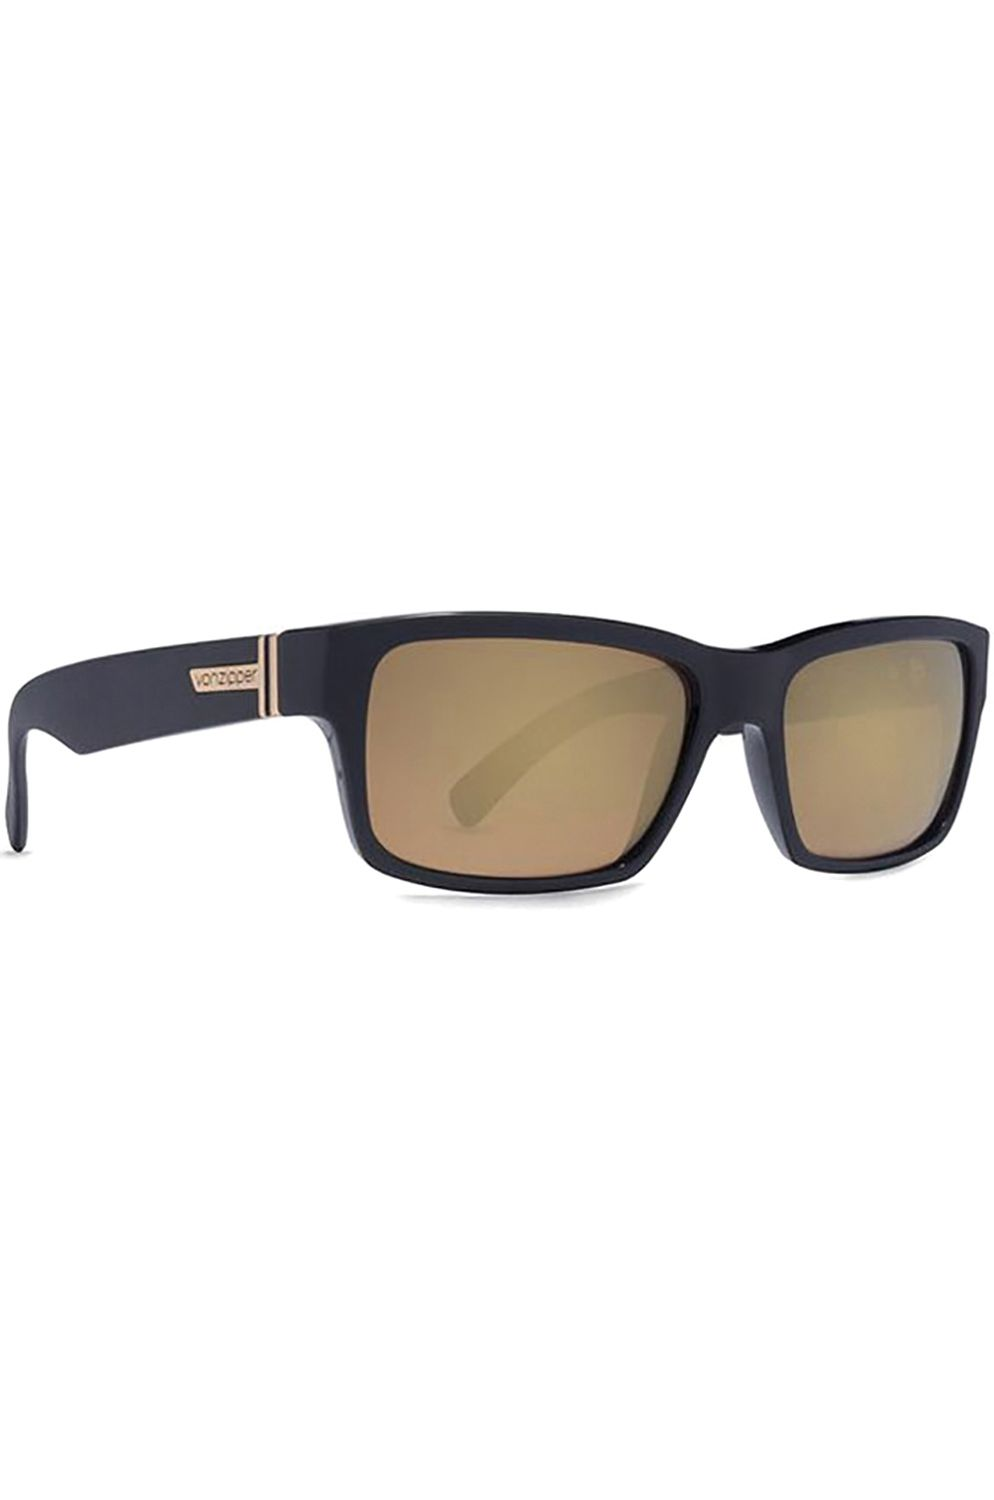 Oculos VonZipper FULTON Battlestations Black / Gold Glo Chrome